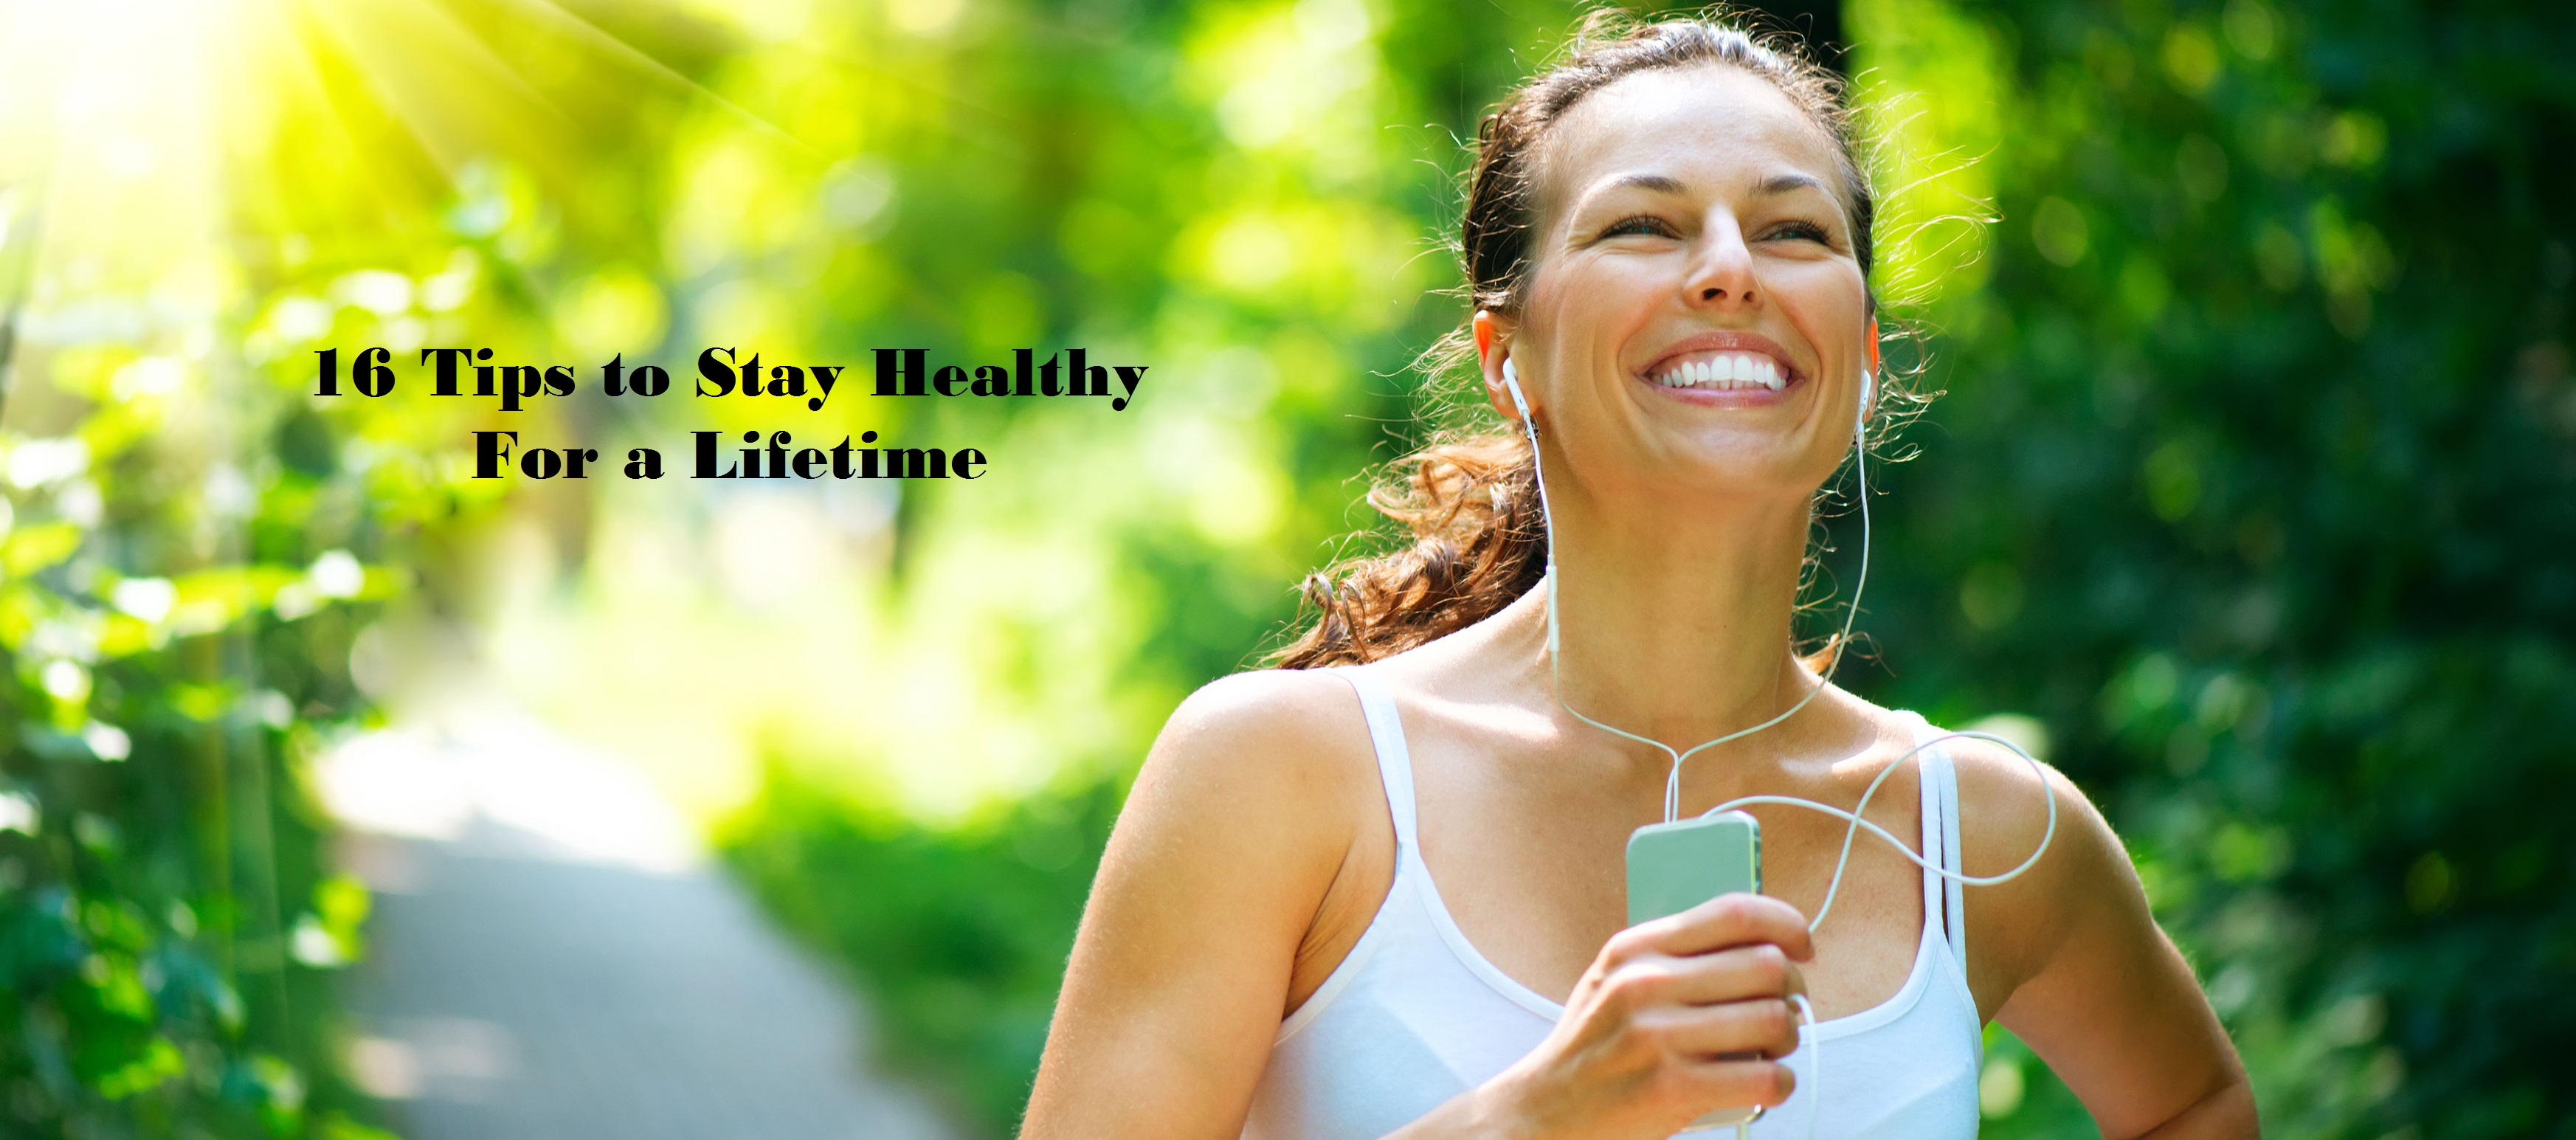 16 Tips to Stay Healthy For a Lifetime